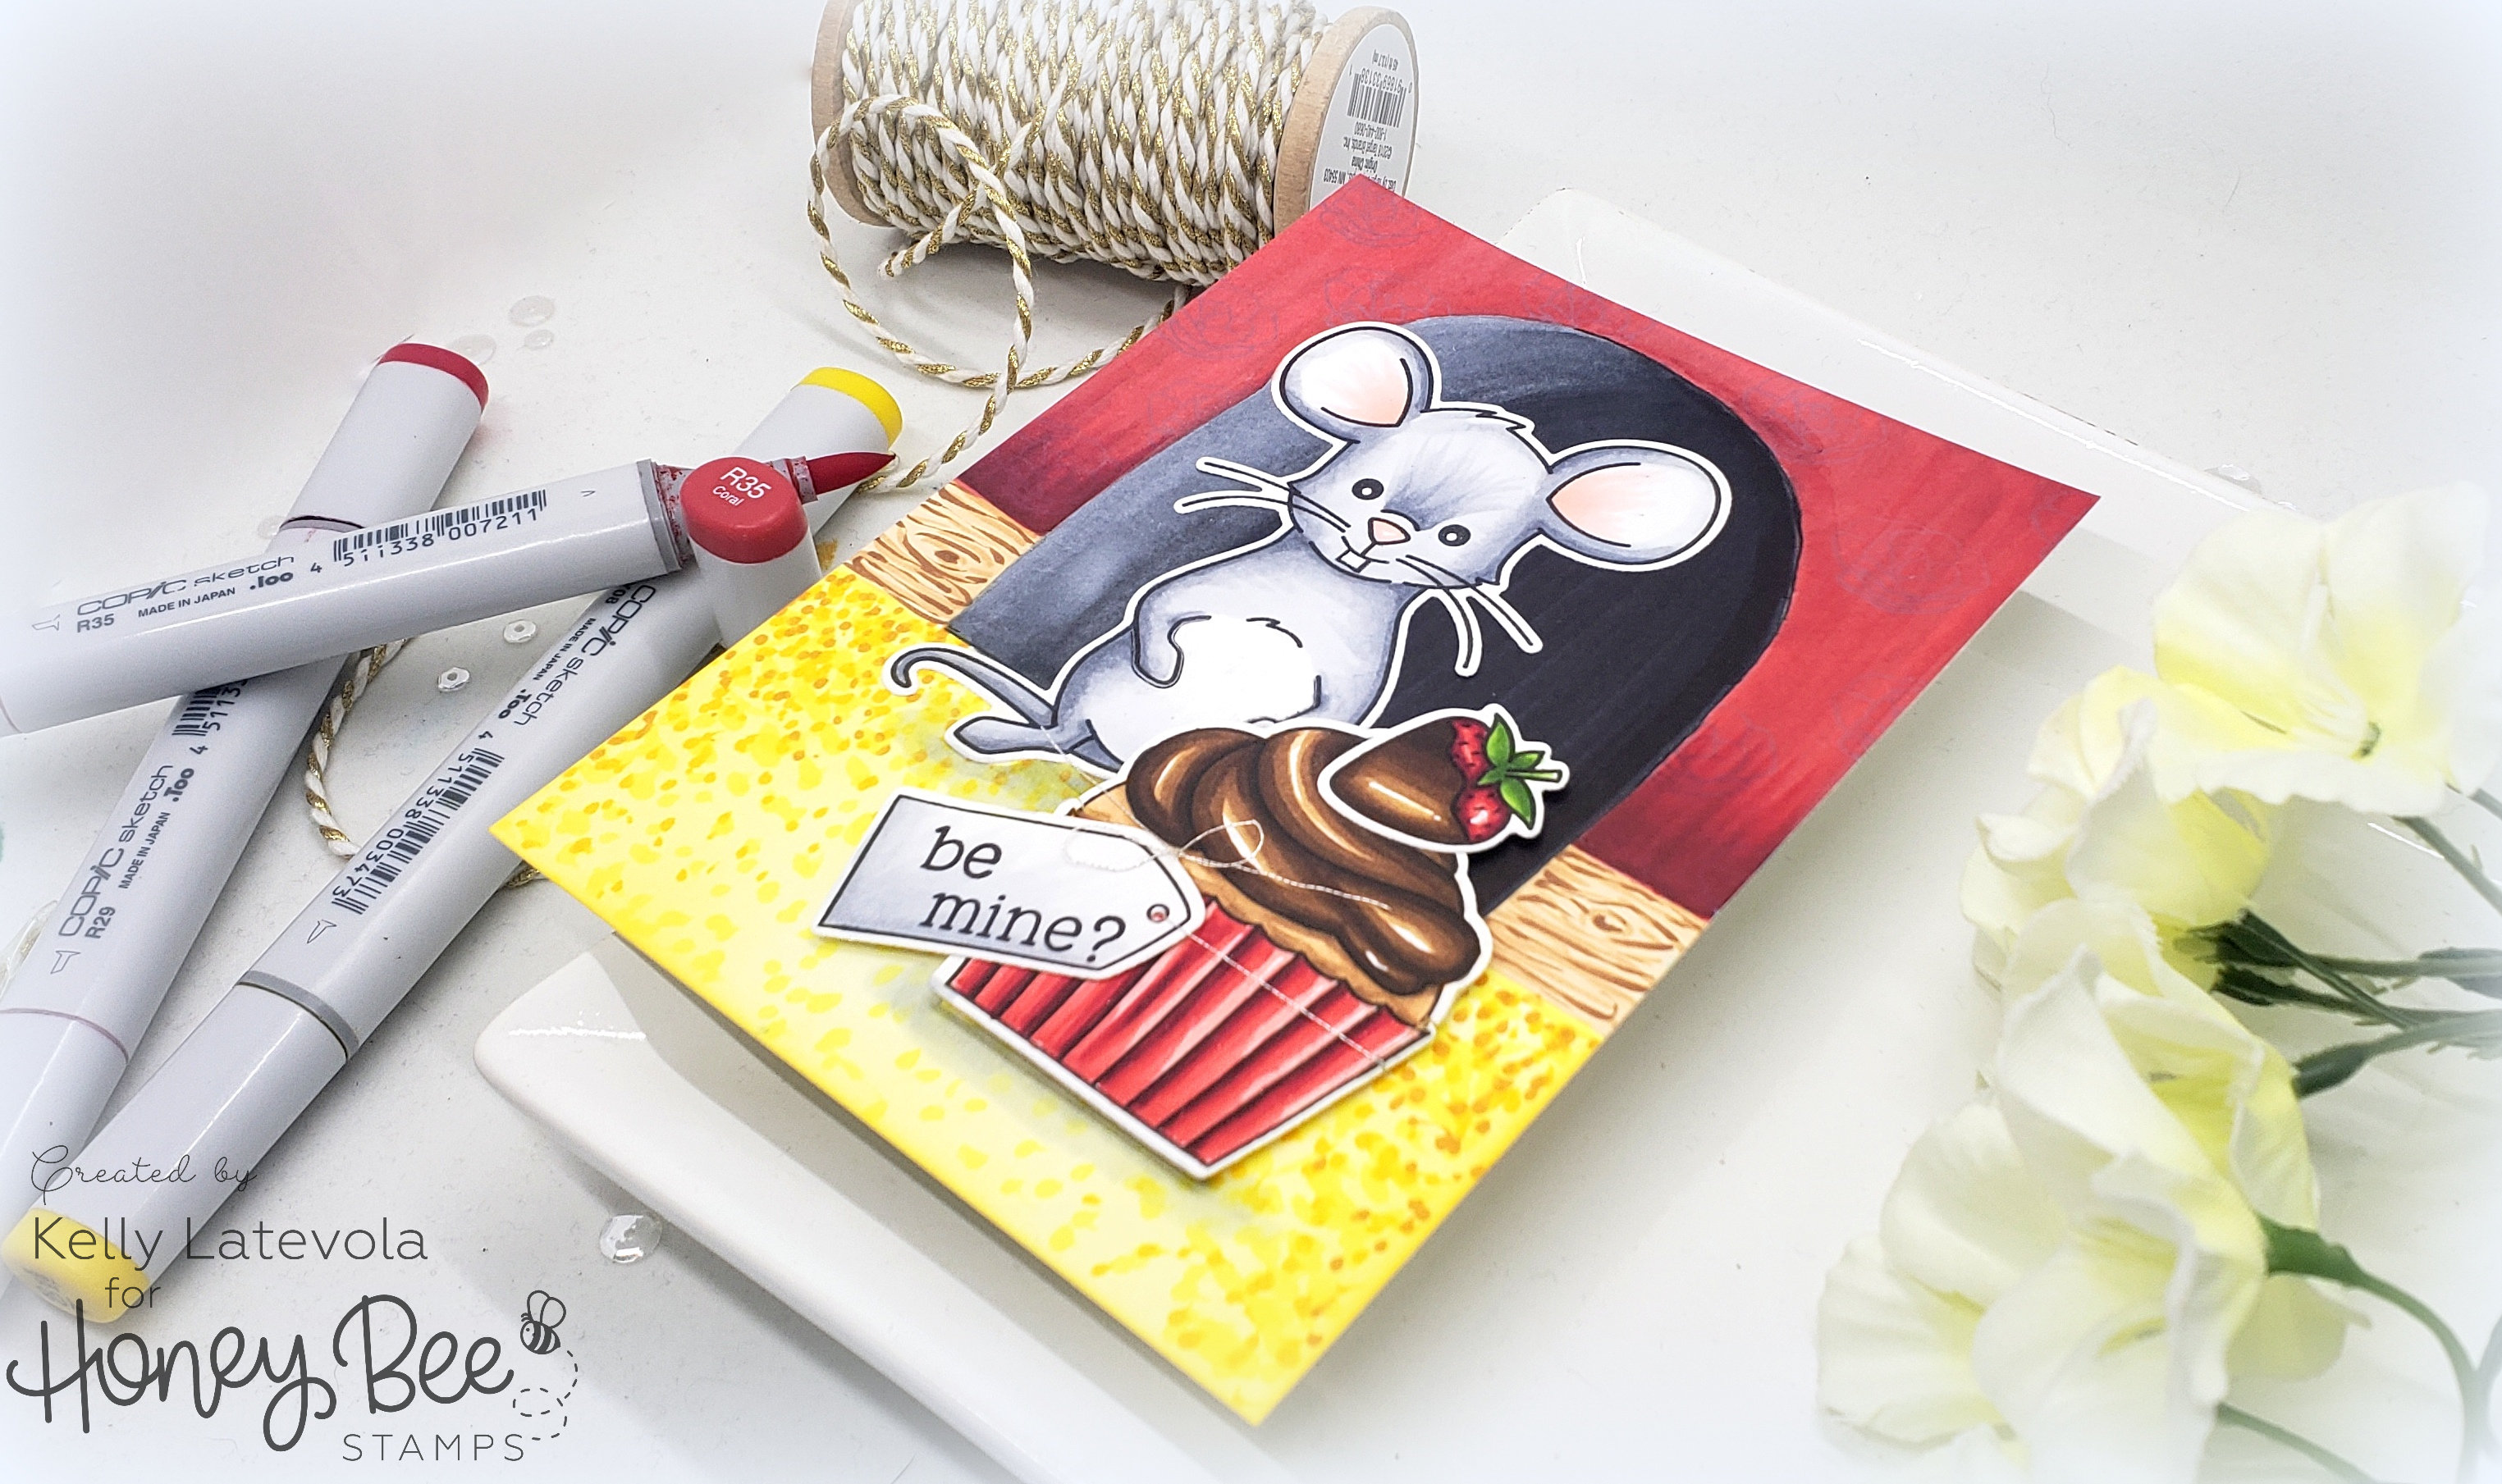 Be Mine? Copic Coloring Scene Card with Kelly Latevola